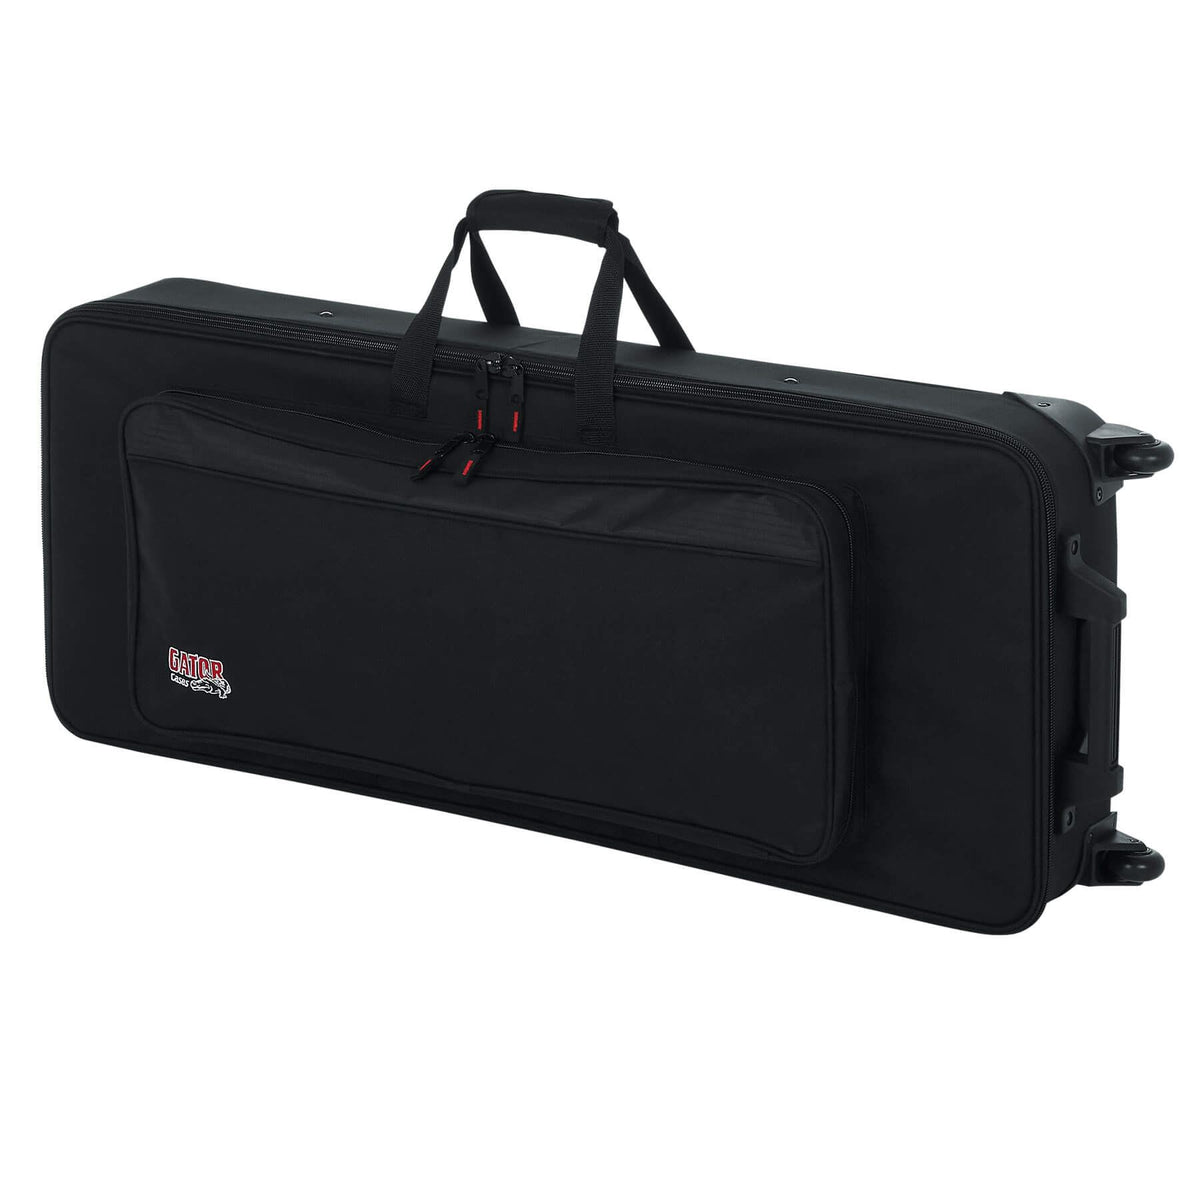 Gator Keyboard Case for Casio CTK-496, CTK-5000, CTK-6000, CTK-7000, CTK-710